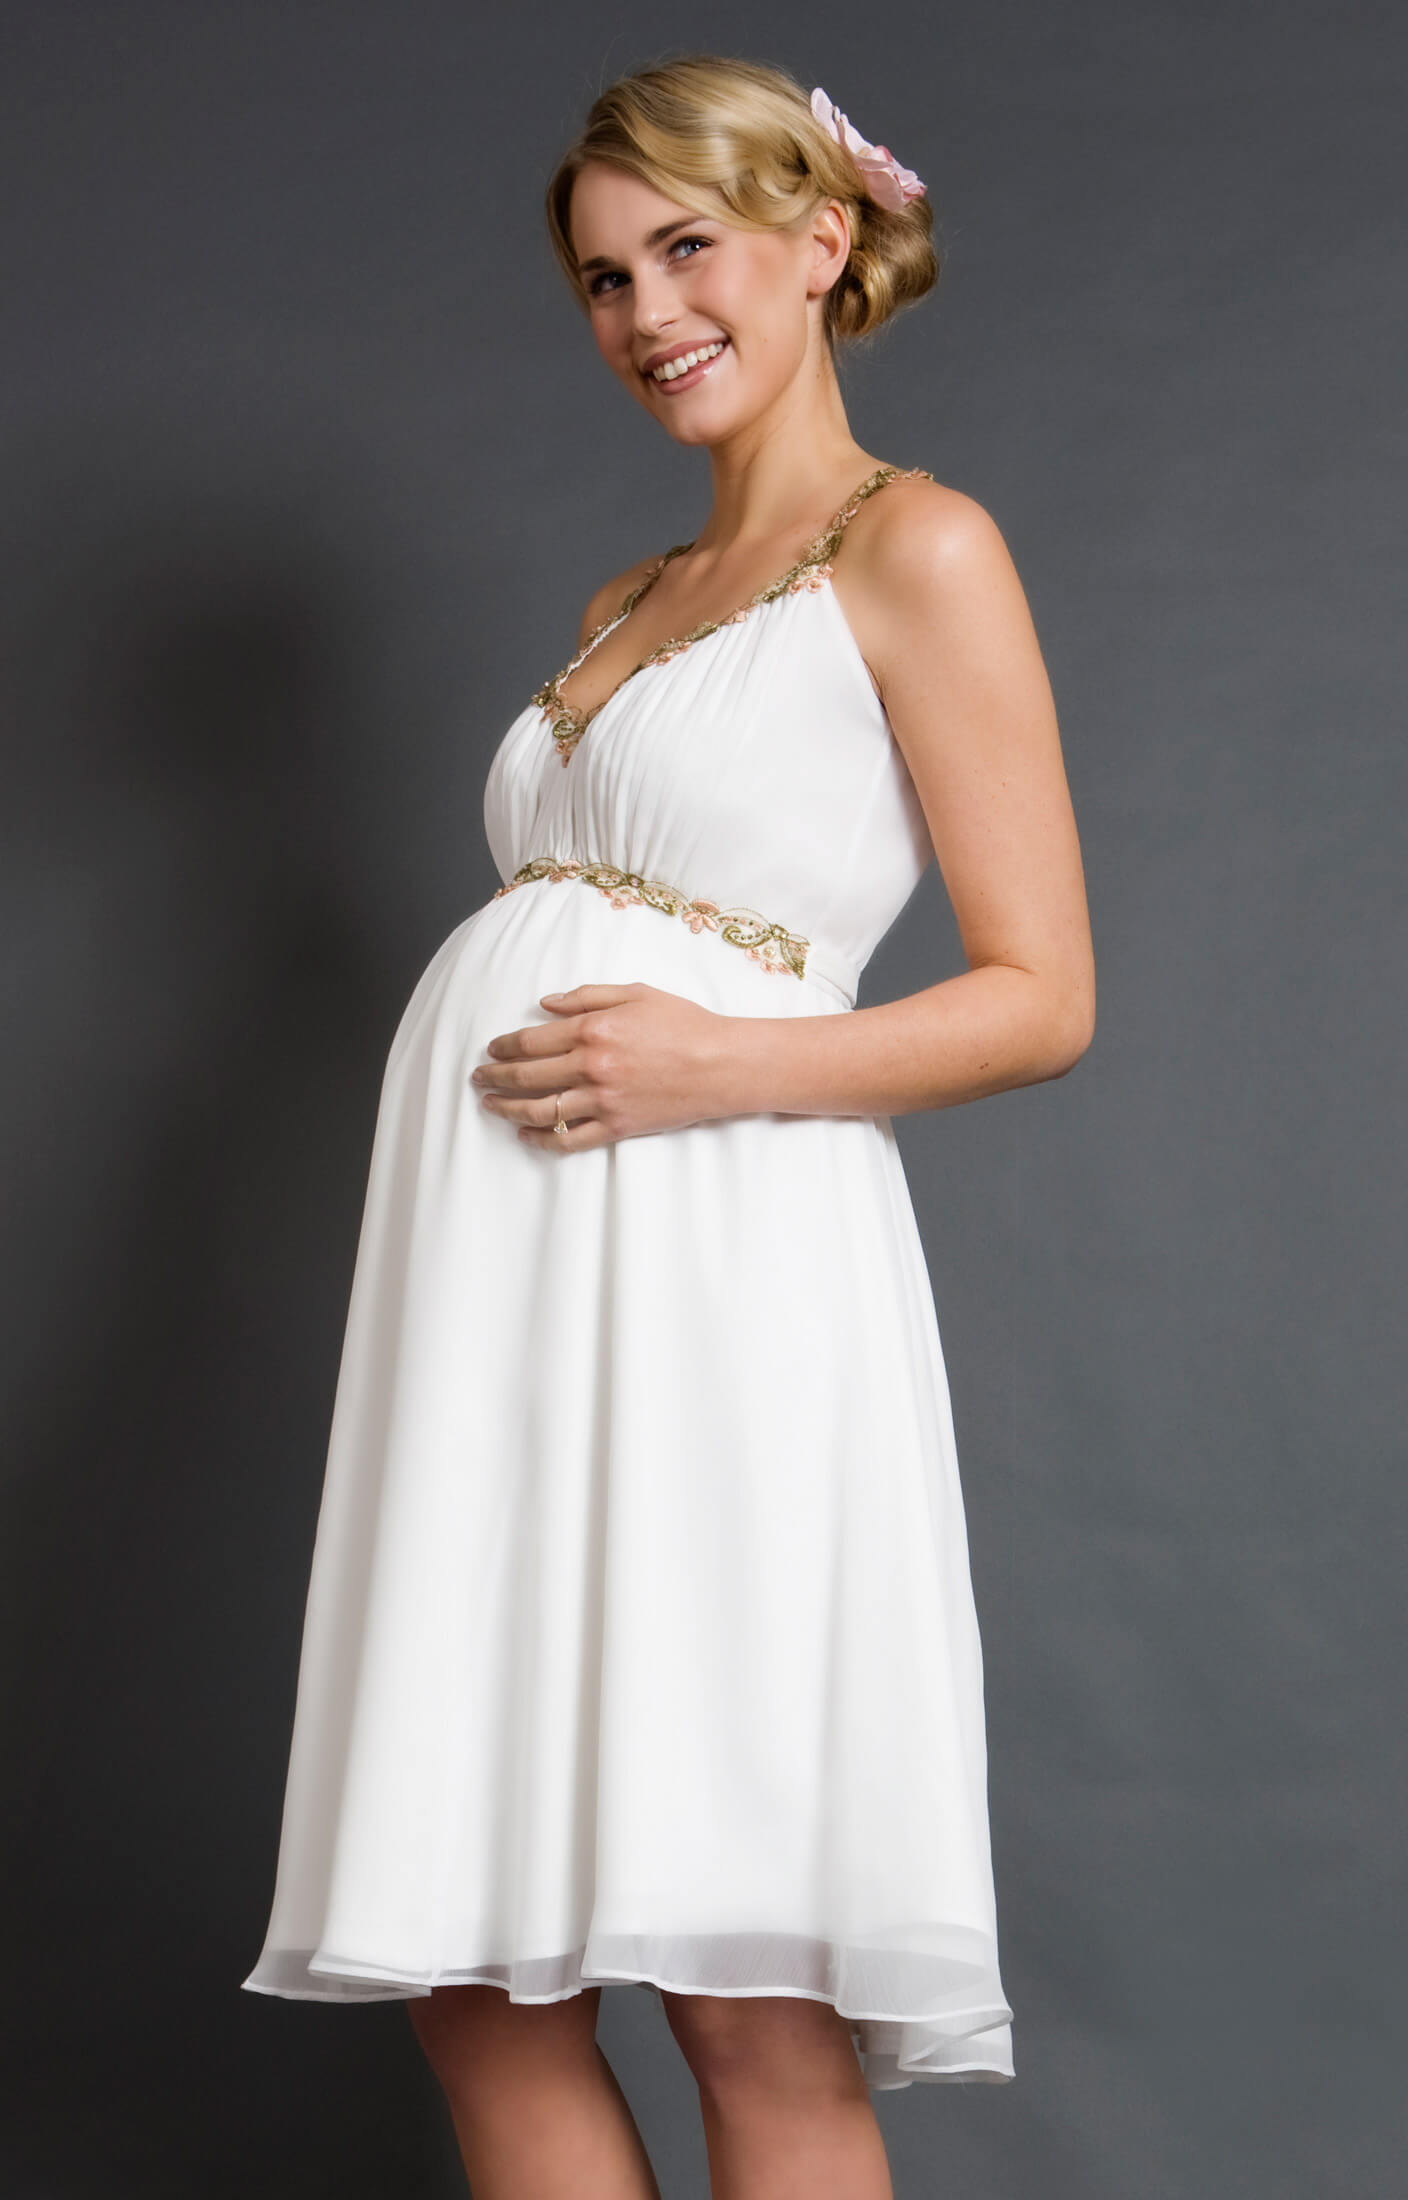 Shop the sale pages at Motherhood Maternity for quality, yet inexpensive maternity clothes for the cost-conscious mom-to-be. You'll find affordable maternity clothes in styles you'll love.